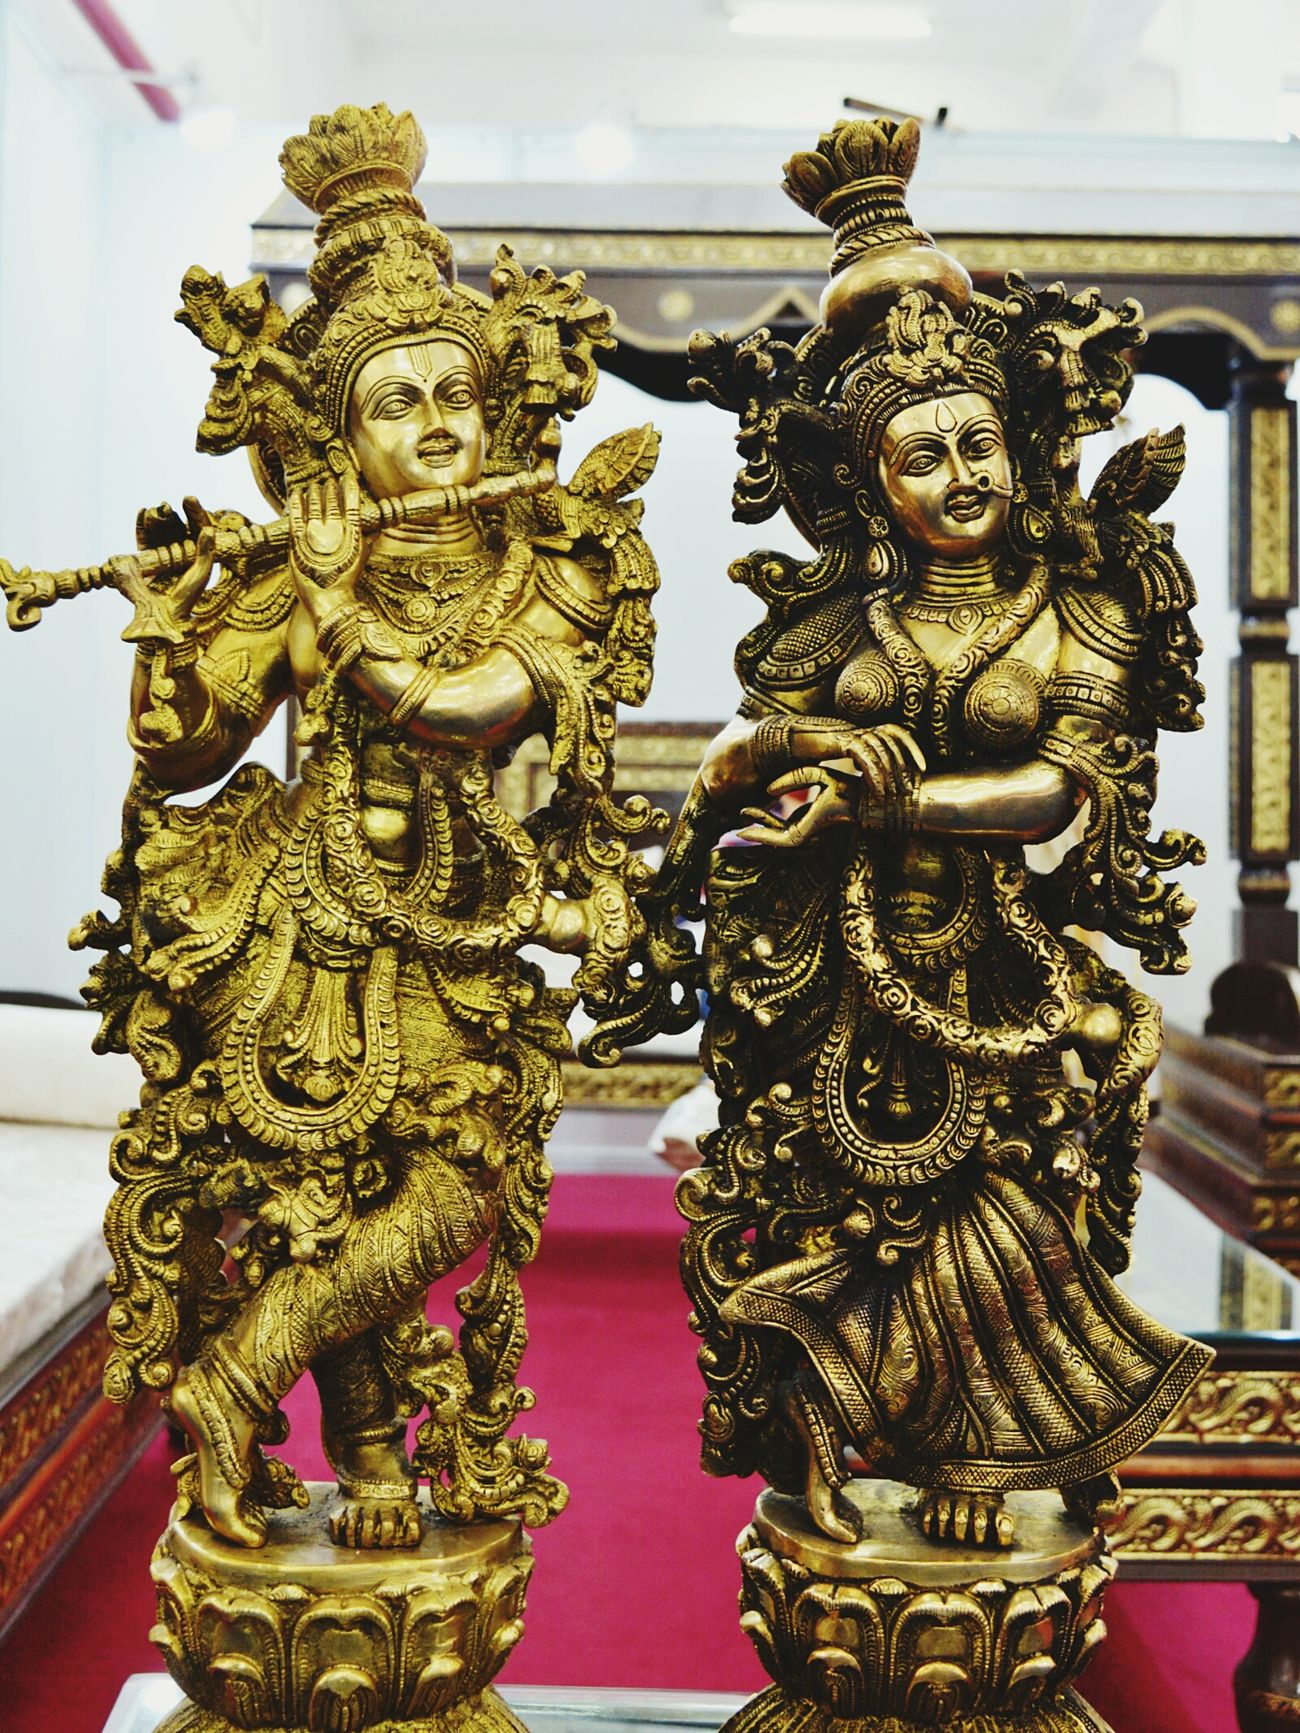 💓Lord Krishna and Godess Radha💓 Krishna Krishnagod Radha Radhakrishna Radha And Krishna God Idol Craftsmanship  Holy Spiritual Hindu Gods Deity Statue Gold Colored Indoors  Architecture No People Day